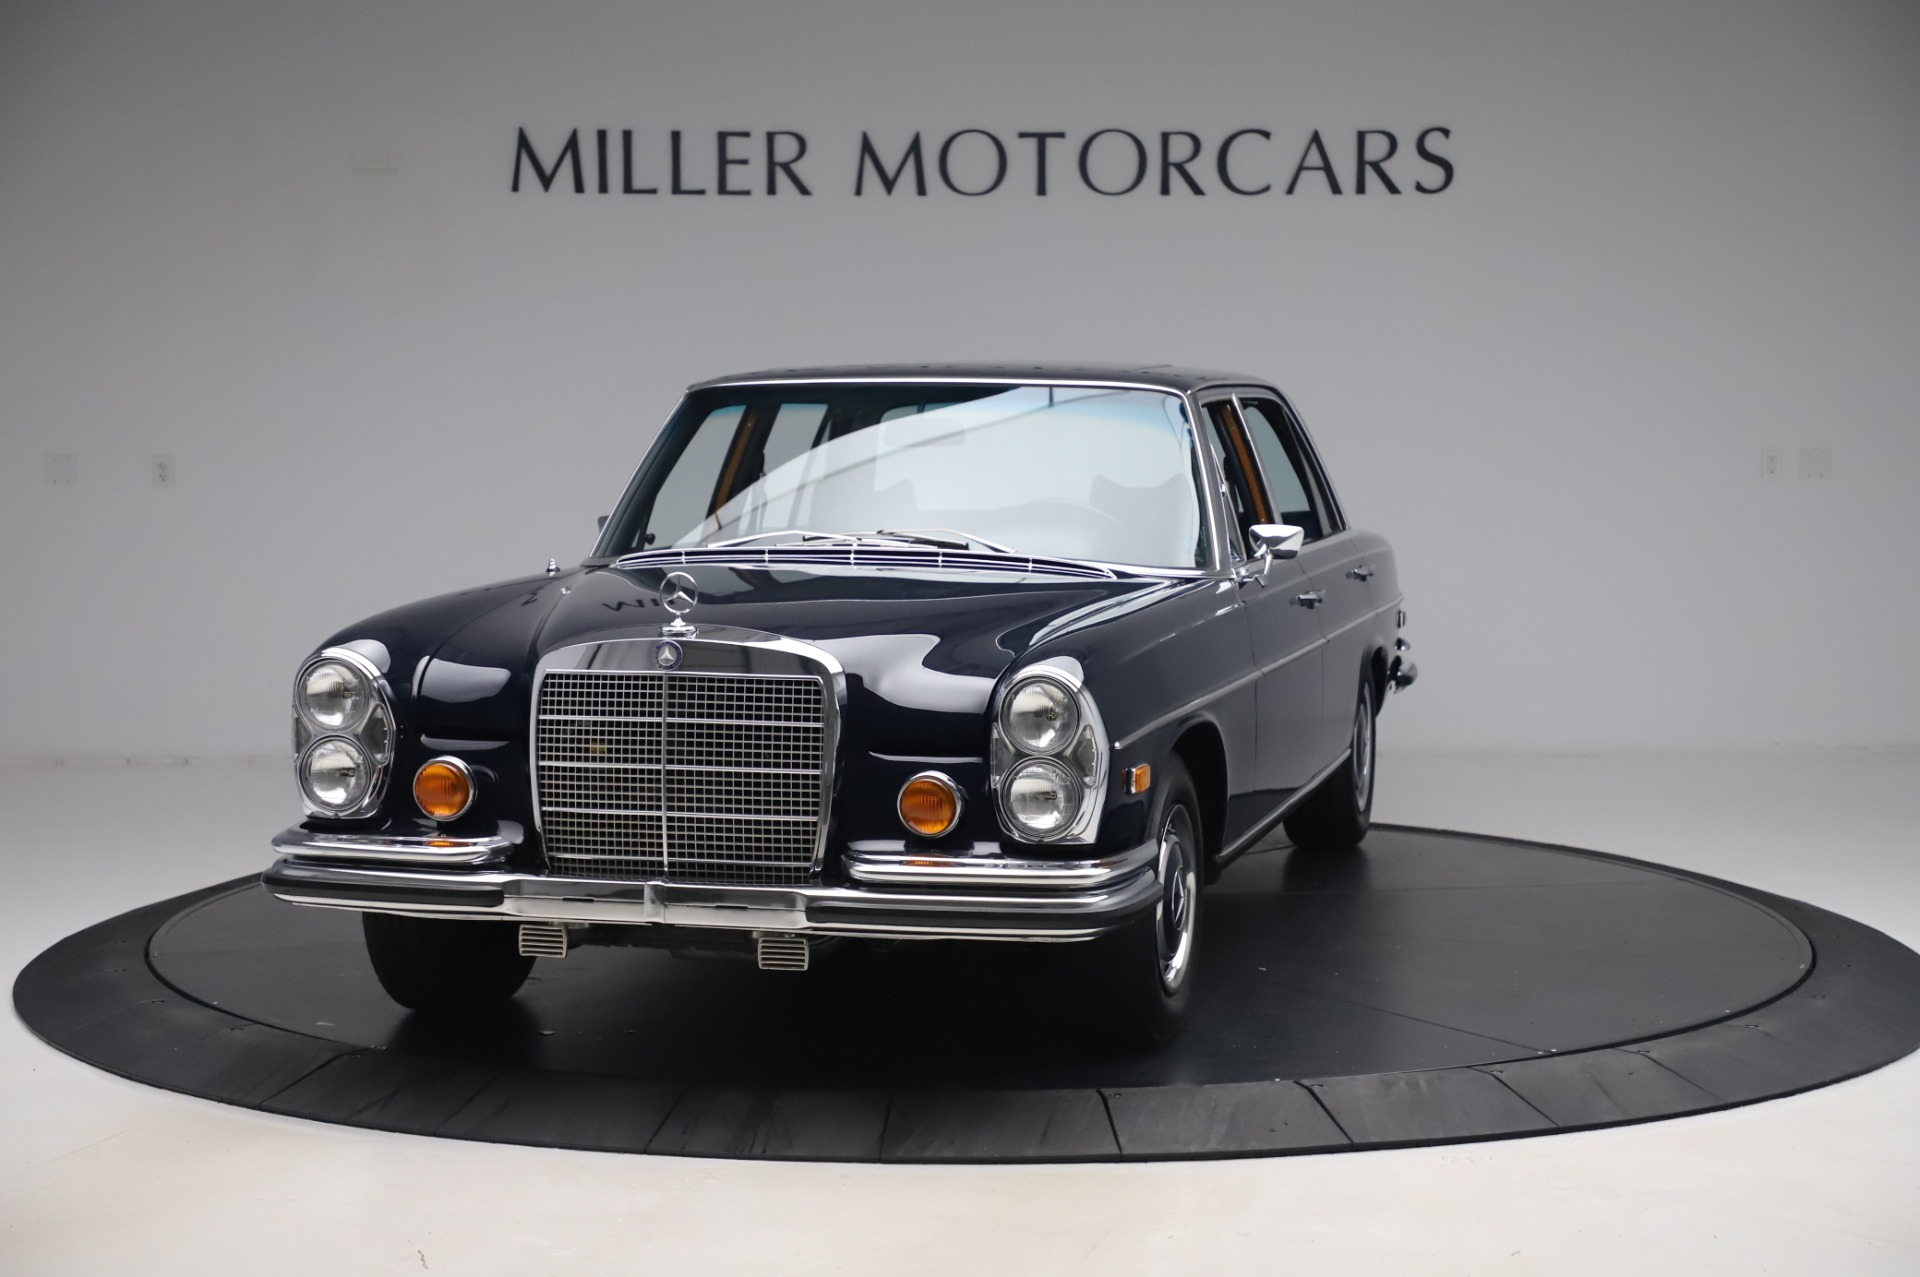 Used 1971 Mercedes-Benz 300 SEL 6.3 for sale $117,000 at Alfa Romeo of Greenwich in Greenwich CT 06830 1